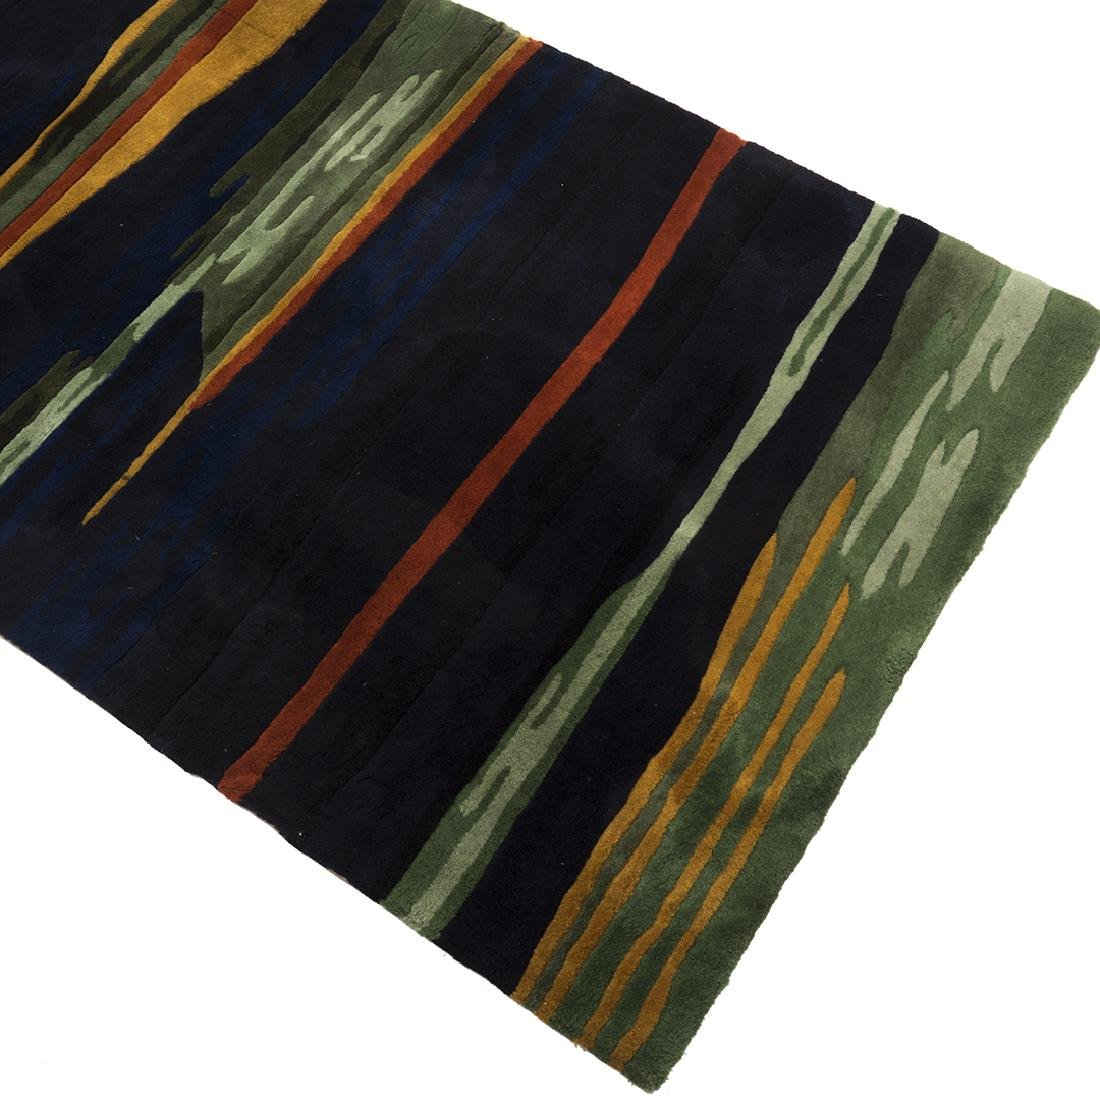 Modernist Abstract Wool Rug - 2